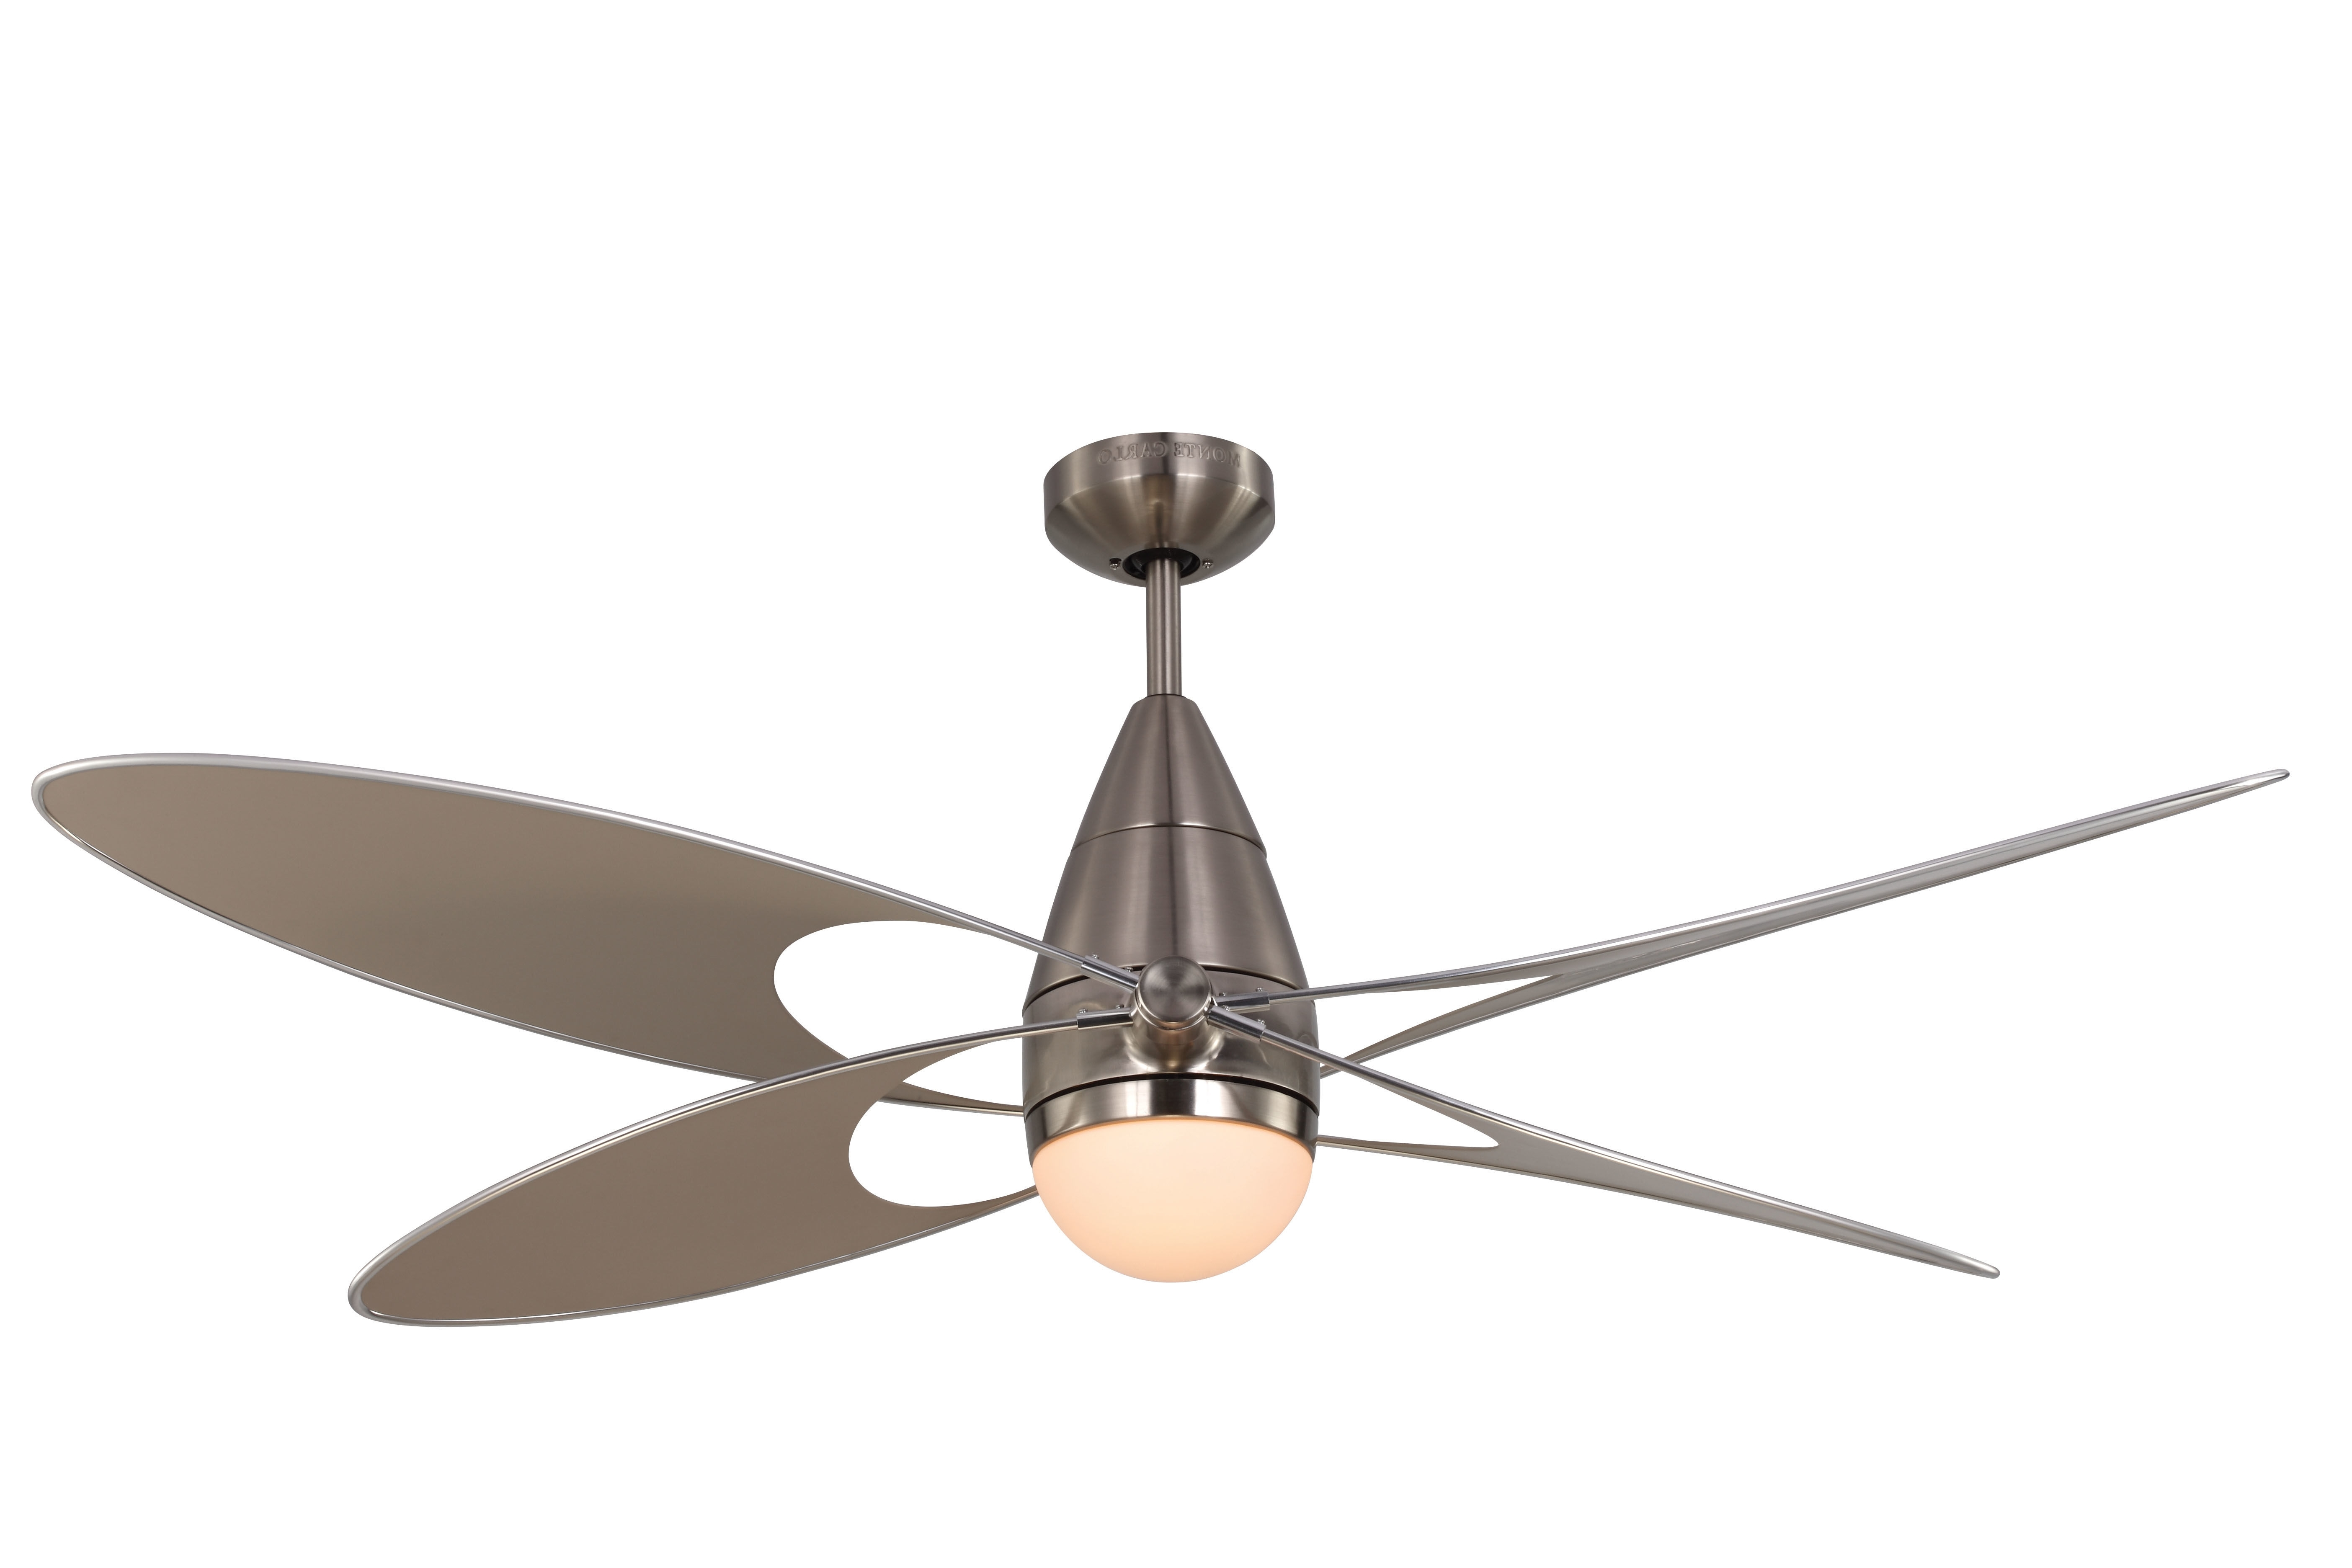 """2018 Outdoor Ceiling Fans With Remote And Light With Regard To Monte Carlo 4Bfr54Bkd Matte Black 4 Bladed 54"""" Indoor/outdoor (Gallery 20 of 20)"""